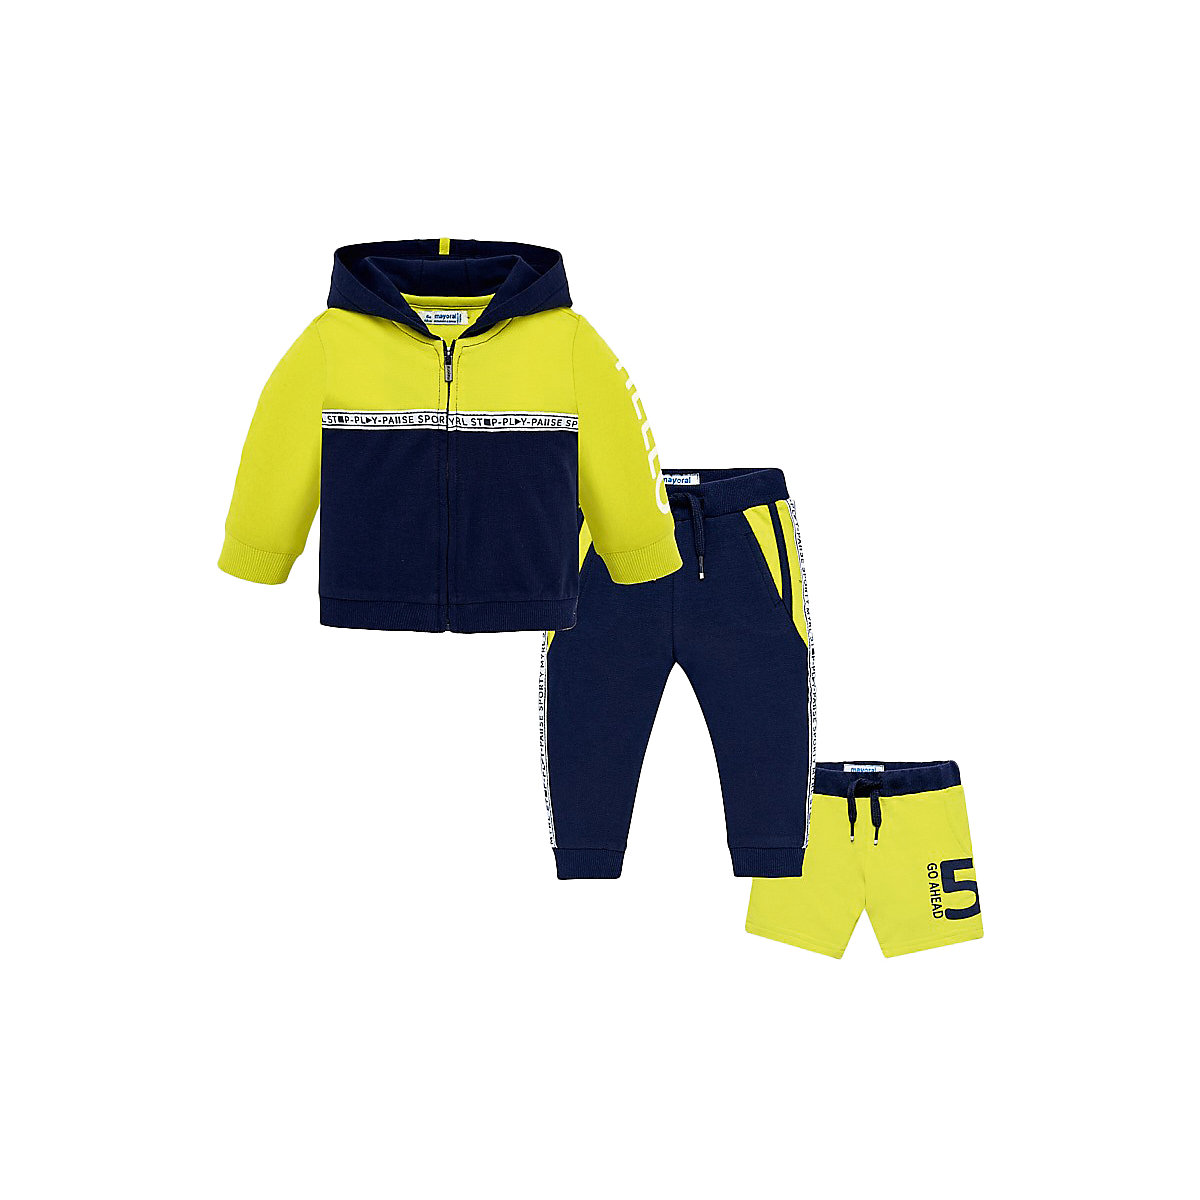 Children Two-Piece Suits Mayoral 10685162 Children Sportswear Accessories costumes for the child hollow out two piece dress